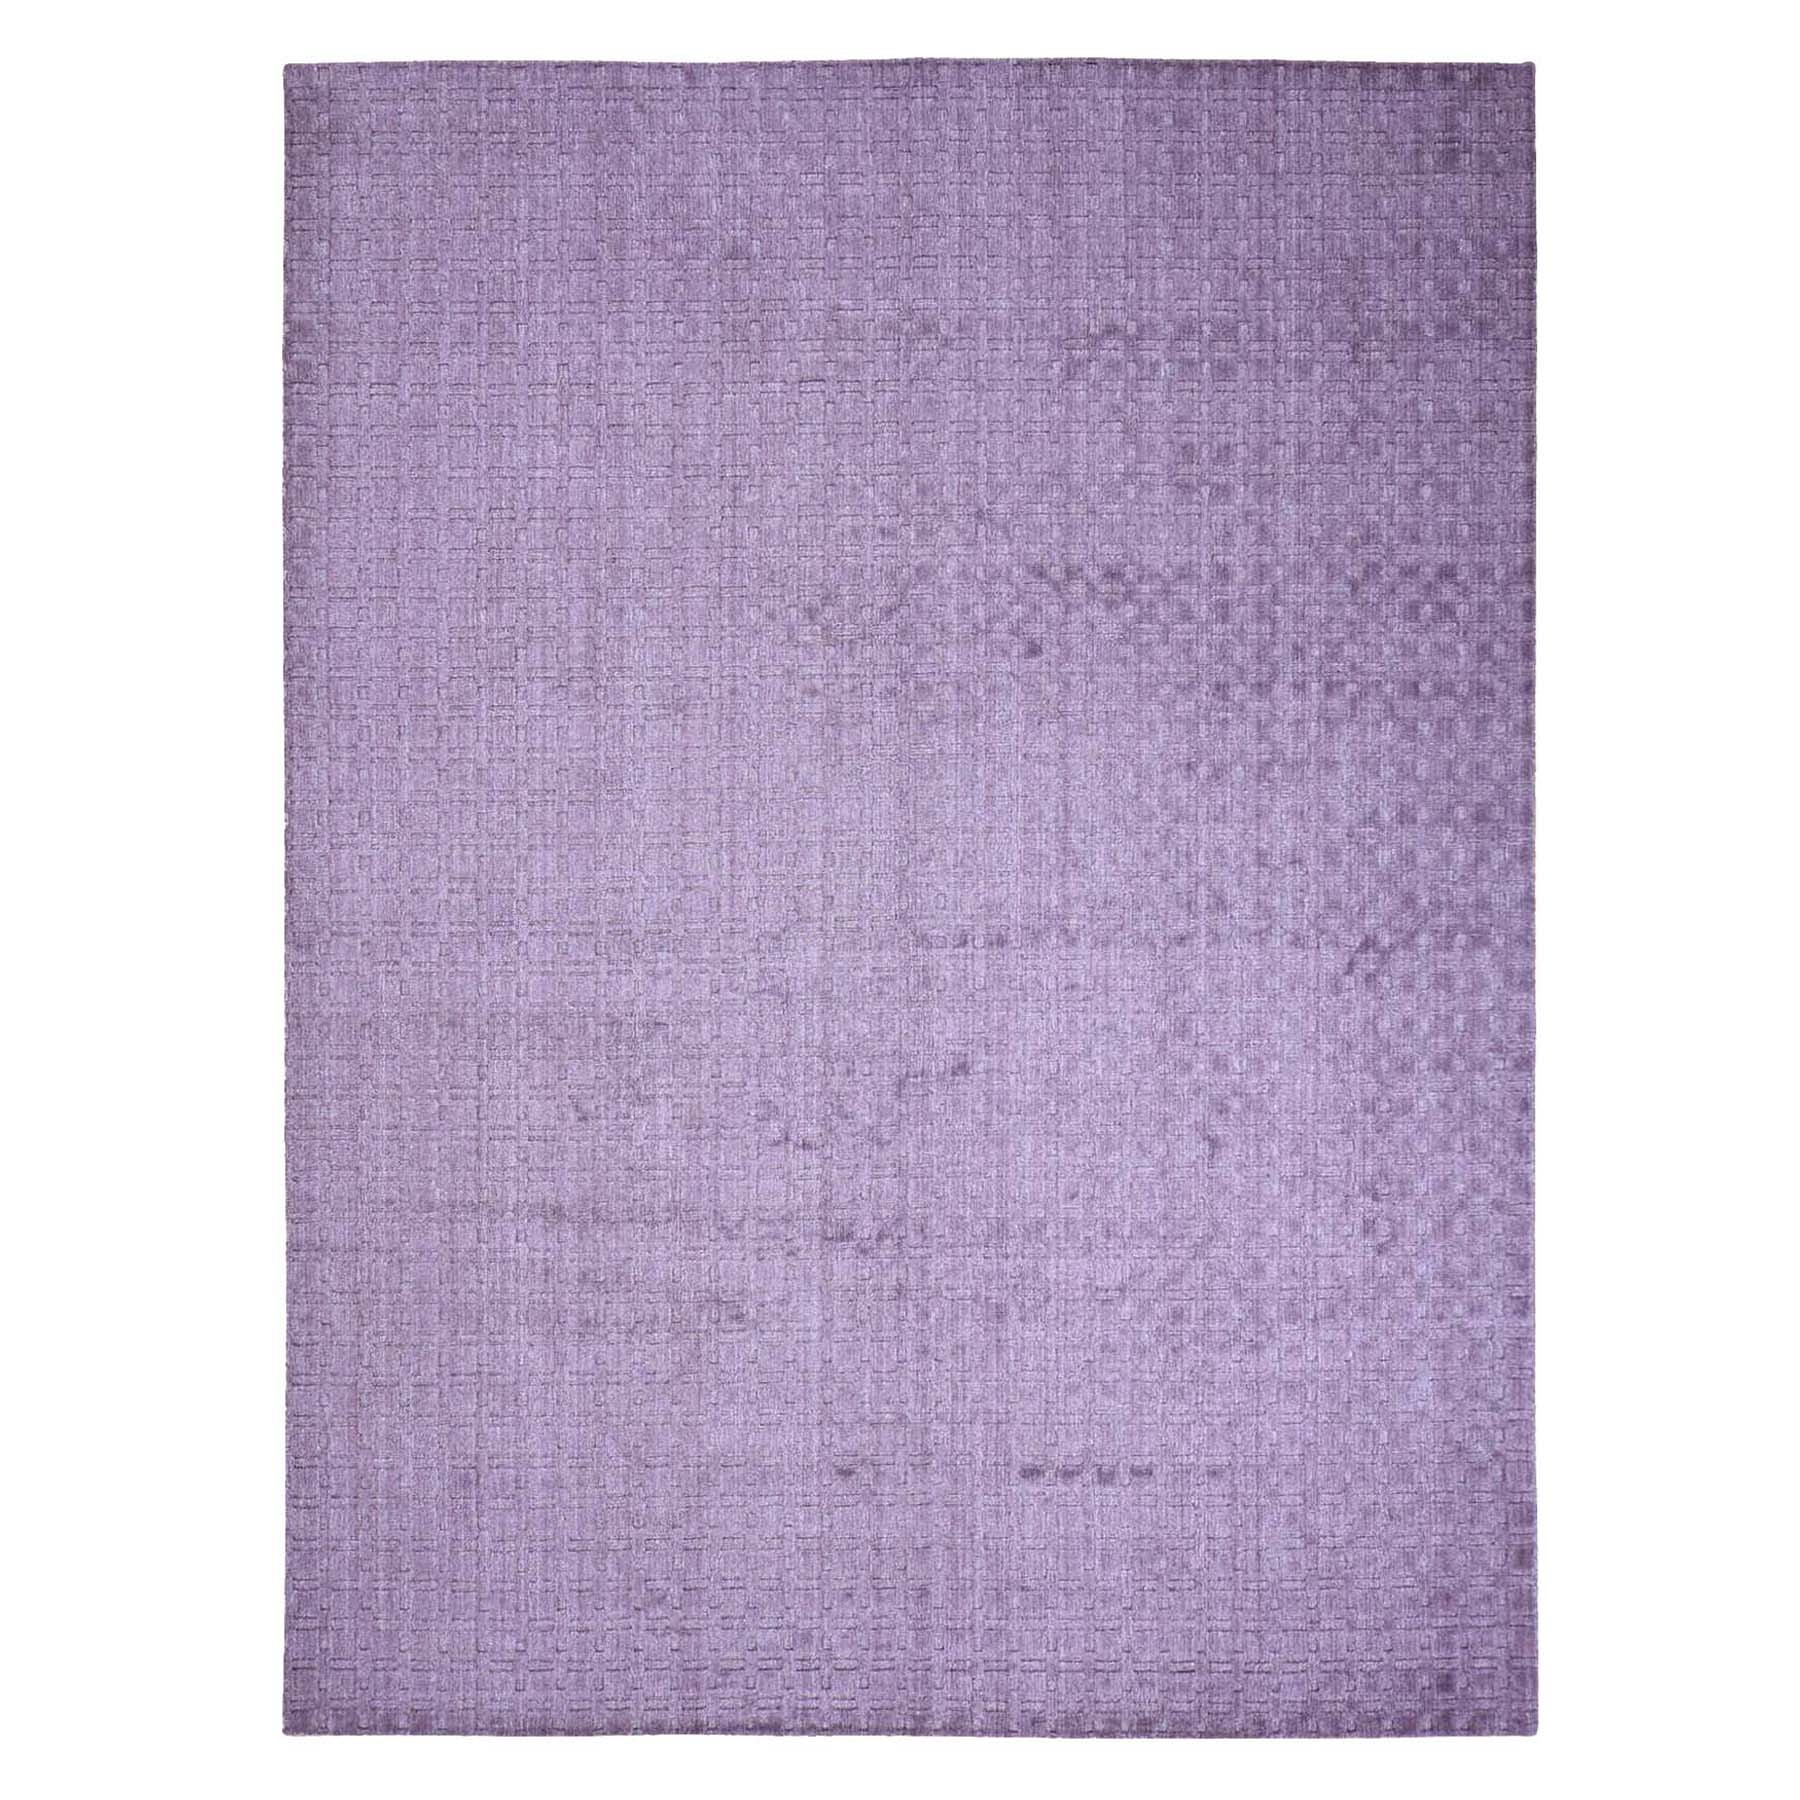 9'1'X12' Pure Wool Hand-Loomed Tone On Tone Ultra Violet Oriental Rug moac977e